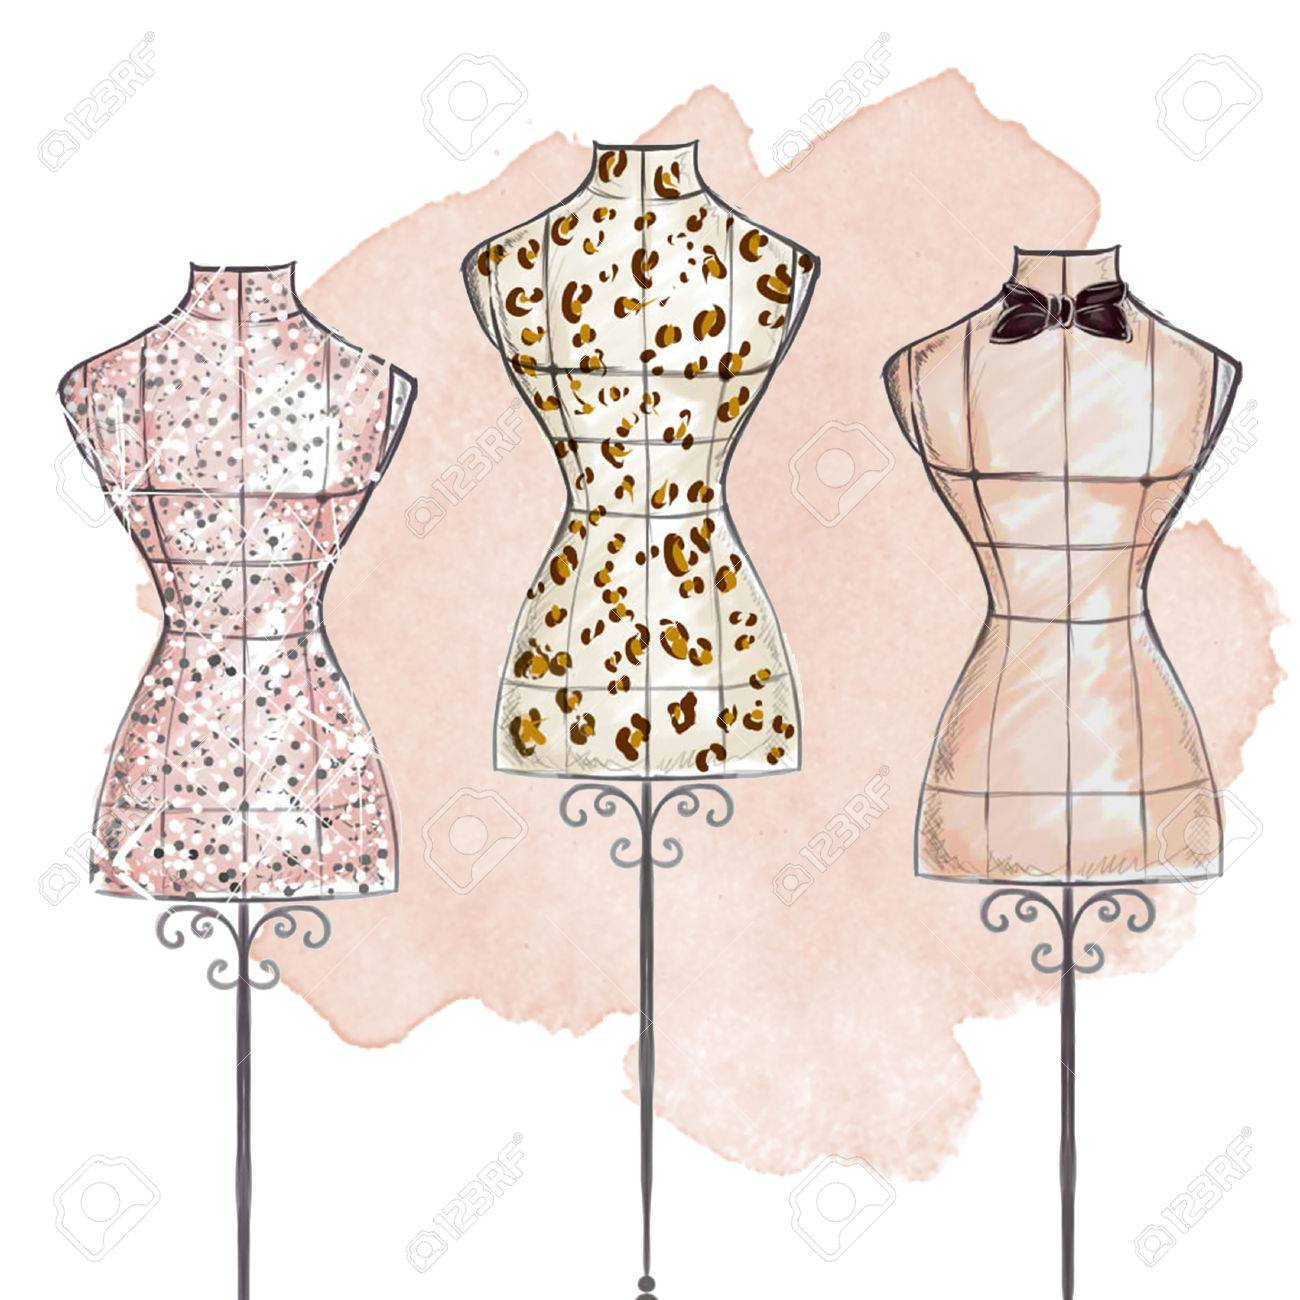 Fashion Illustration Hand Draw Watercolor Mannequins Stock Photo Picture And Royalty Free Image Image 49178748